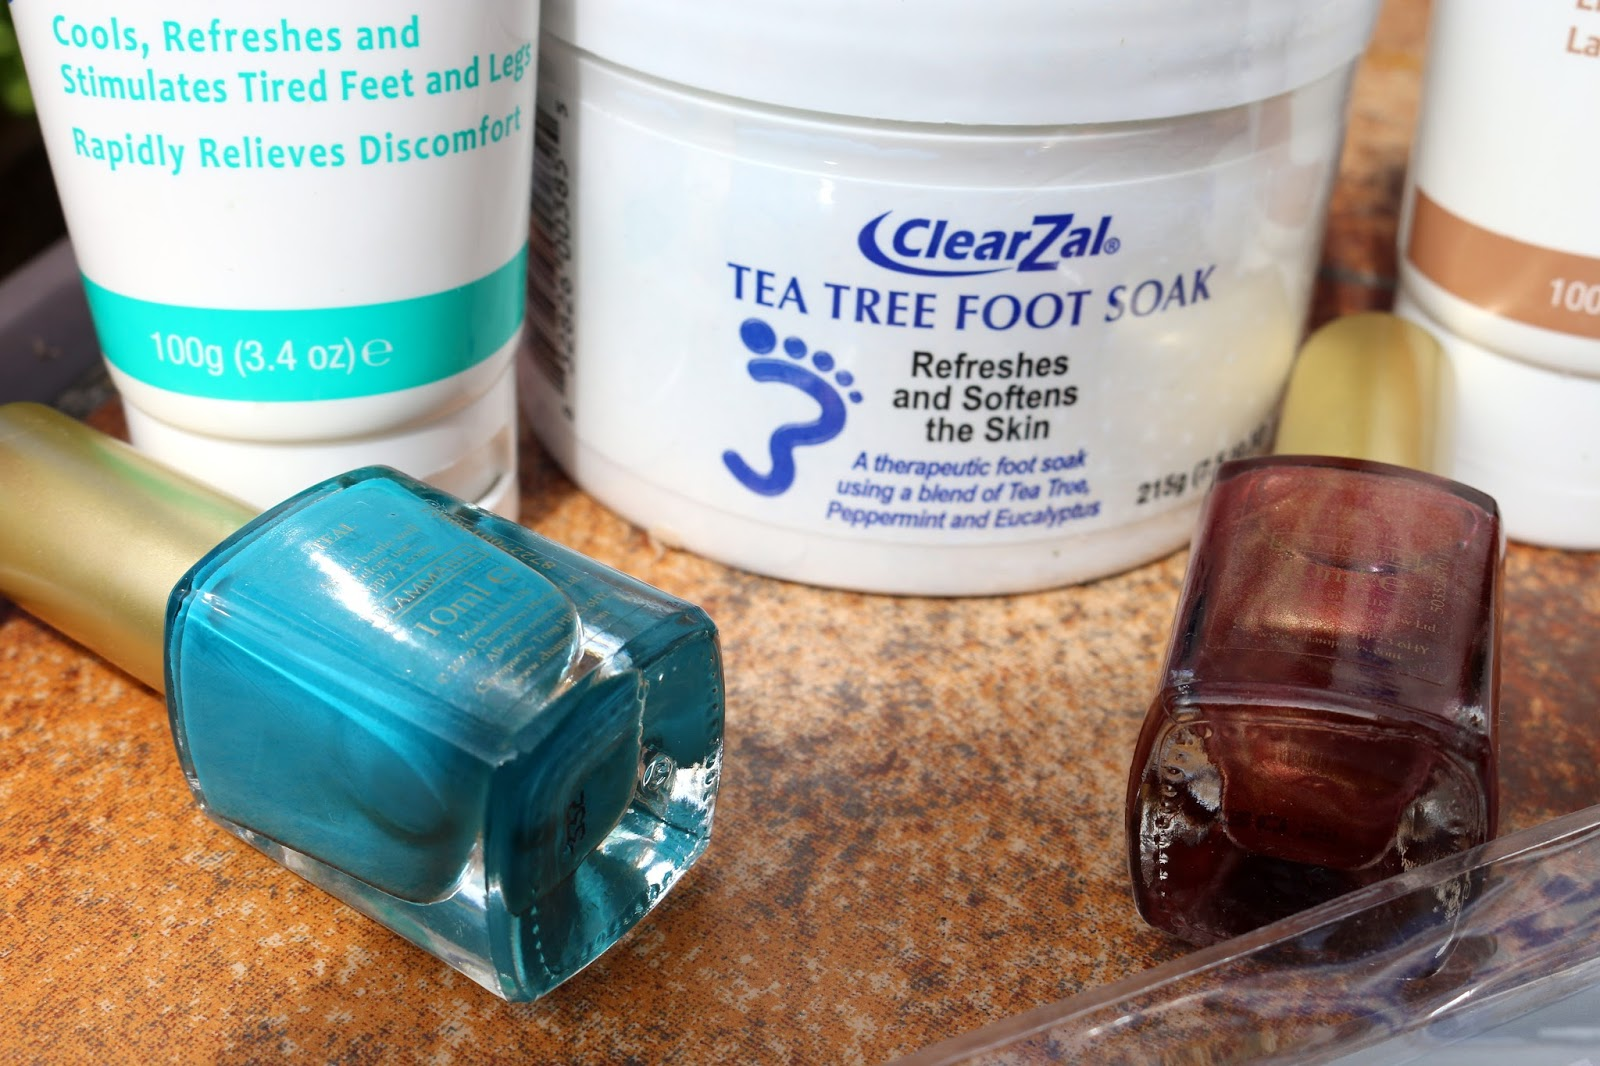 Pampering my Feet with ClearZal!